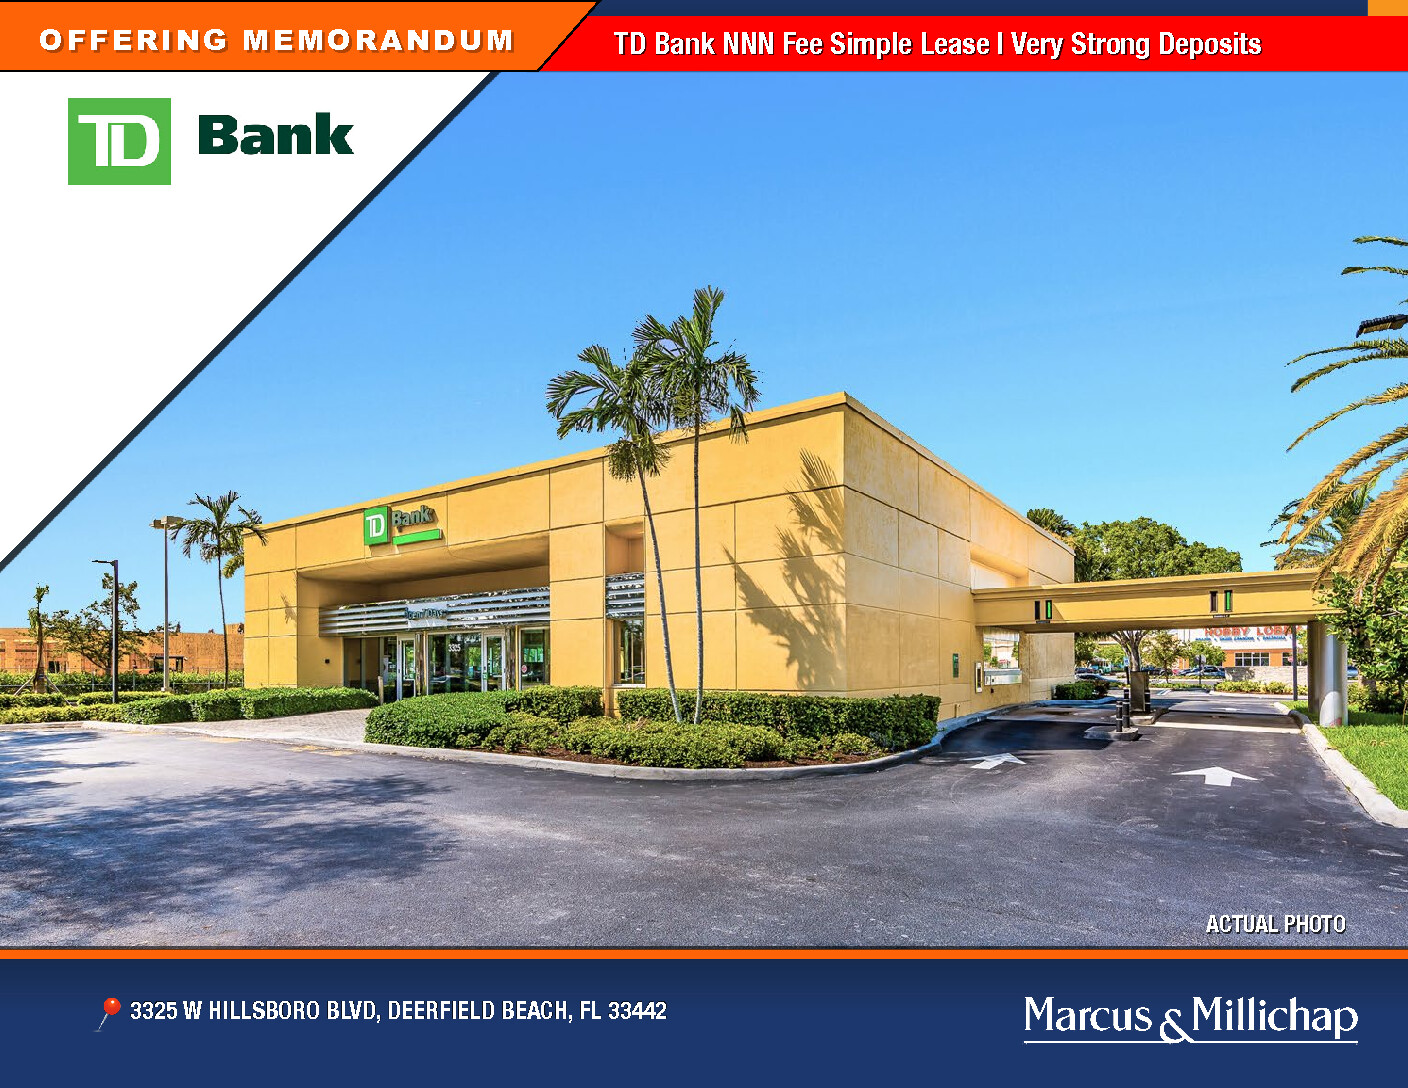 Just Listed! TD Bank Absolute NNN.  Lease Price: $10,160,640 Cap Rate: 6.25%